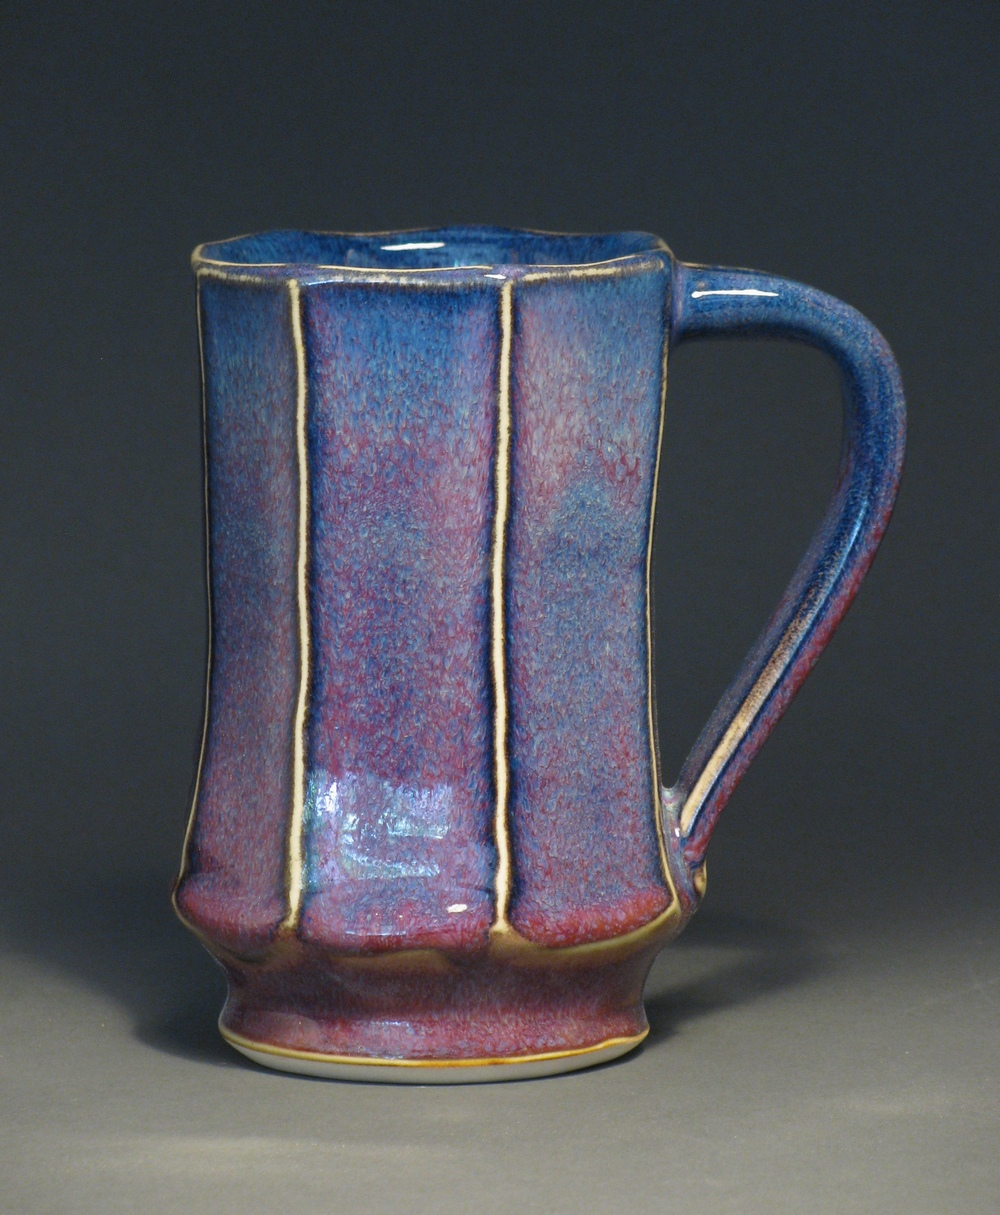 "Facetted mug 5.5"" tall Glazes: purple haze and copper red"